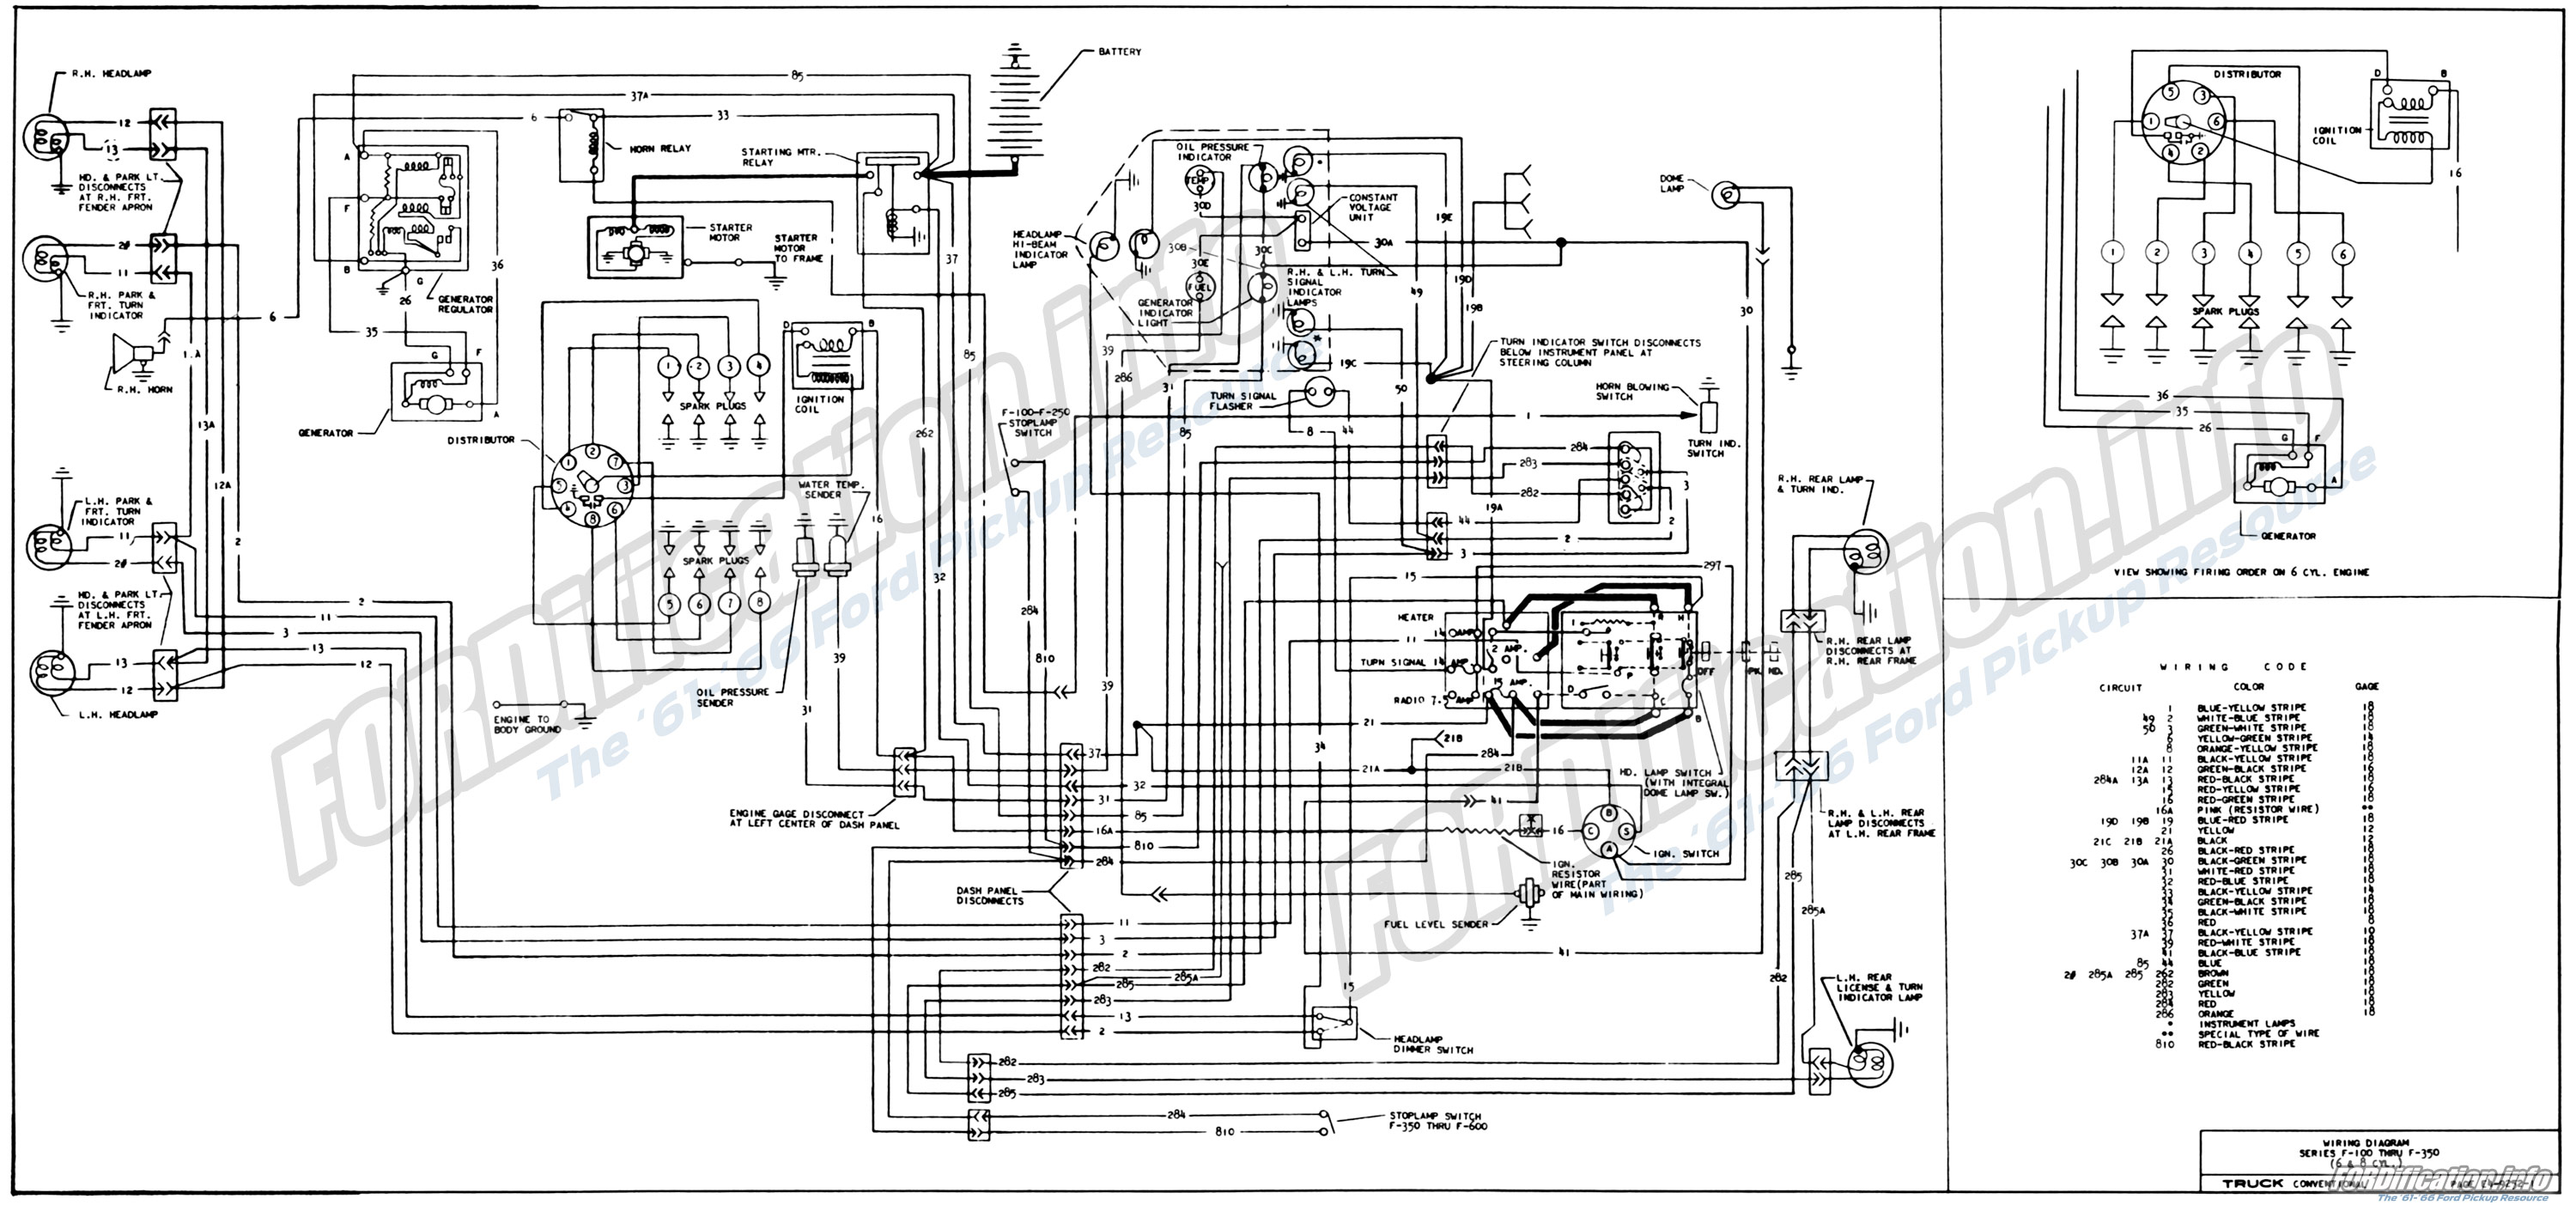 1964 Ford Truck Wiring - Data Wiring Diagram Update  Nova Wiring Diagram on 1969 camaro wiring diagram, 70 chevelle wiring diagram, 1966 chevelle wiring diagram, 1966 impala wiring diagram, ignition box wiring diagram, 1968 camaro wiring diagram, 1964 nova exhaust system, 1964 nova radio, 1959 impala wiring diagram, 1965 chevelle wiring diagram, 1960 impala wiring diagram, 1965 impala wiring diagram, 1970 chevelle wiring diagram, 1968 chevelle wiring diagram, 1967 camaro wiring diagram, 1967 impala wiring diagram, 64 chevelle wiring diagram, 1964 nova relay, 1963 corvette wiring diagram, 1964 nova headlight,